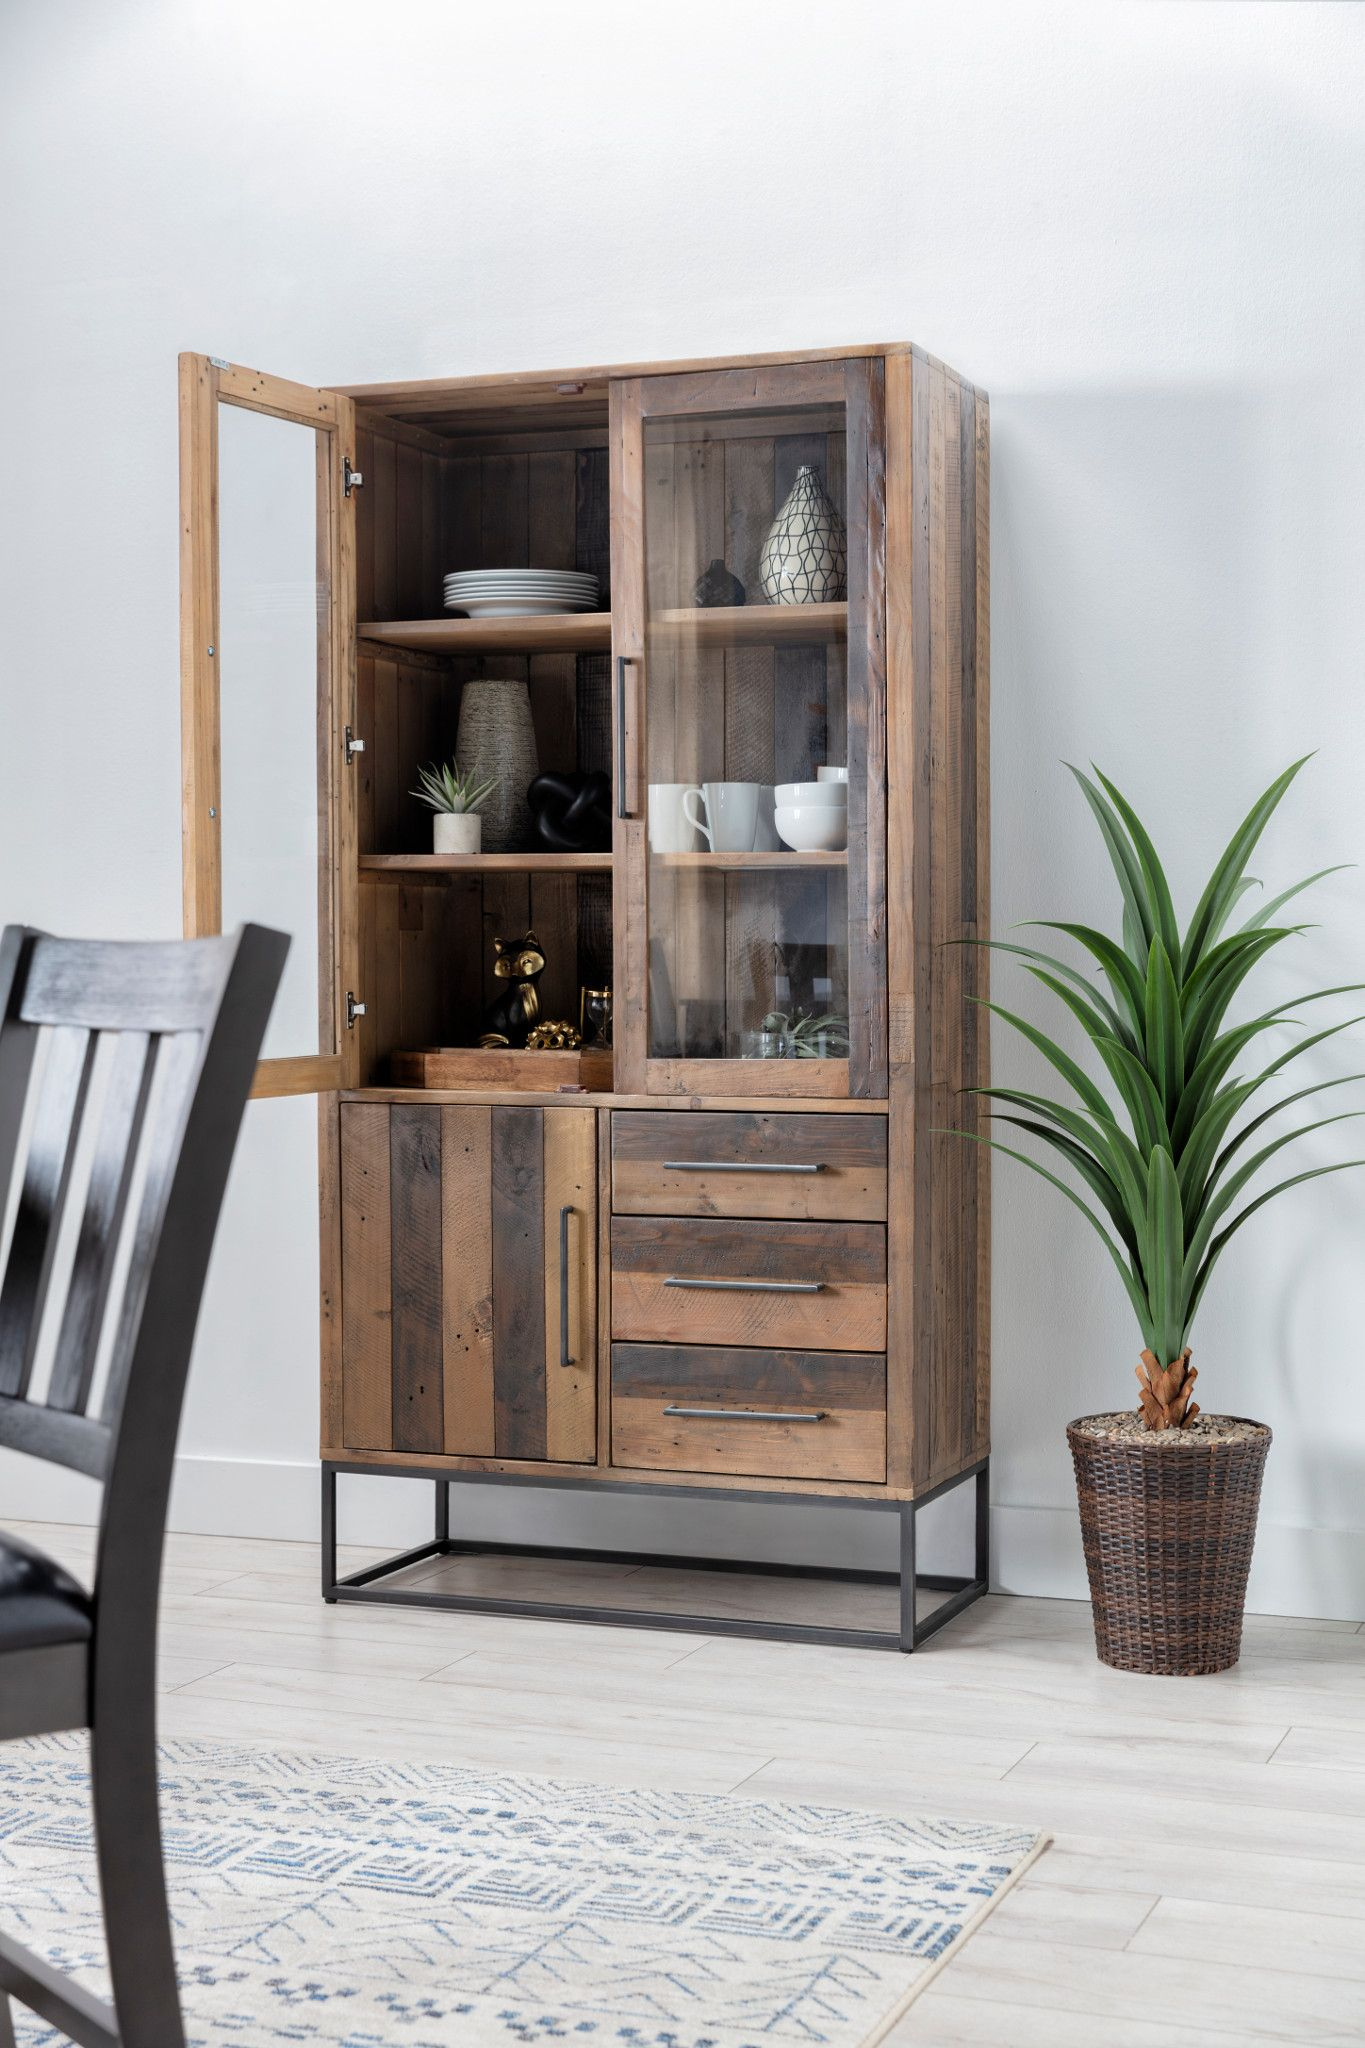 Modern Rustic Curio Furniture Cabinet Rustic Cabinets #rustic #living #room #cabinets